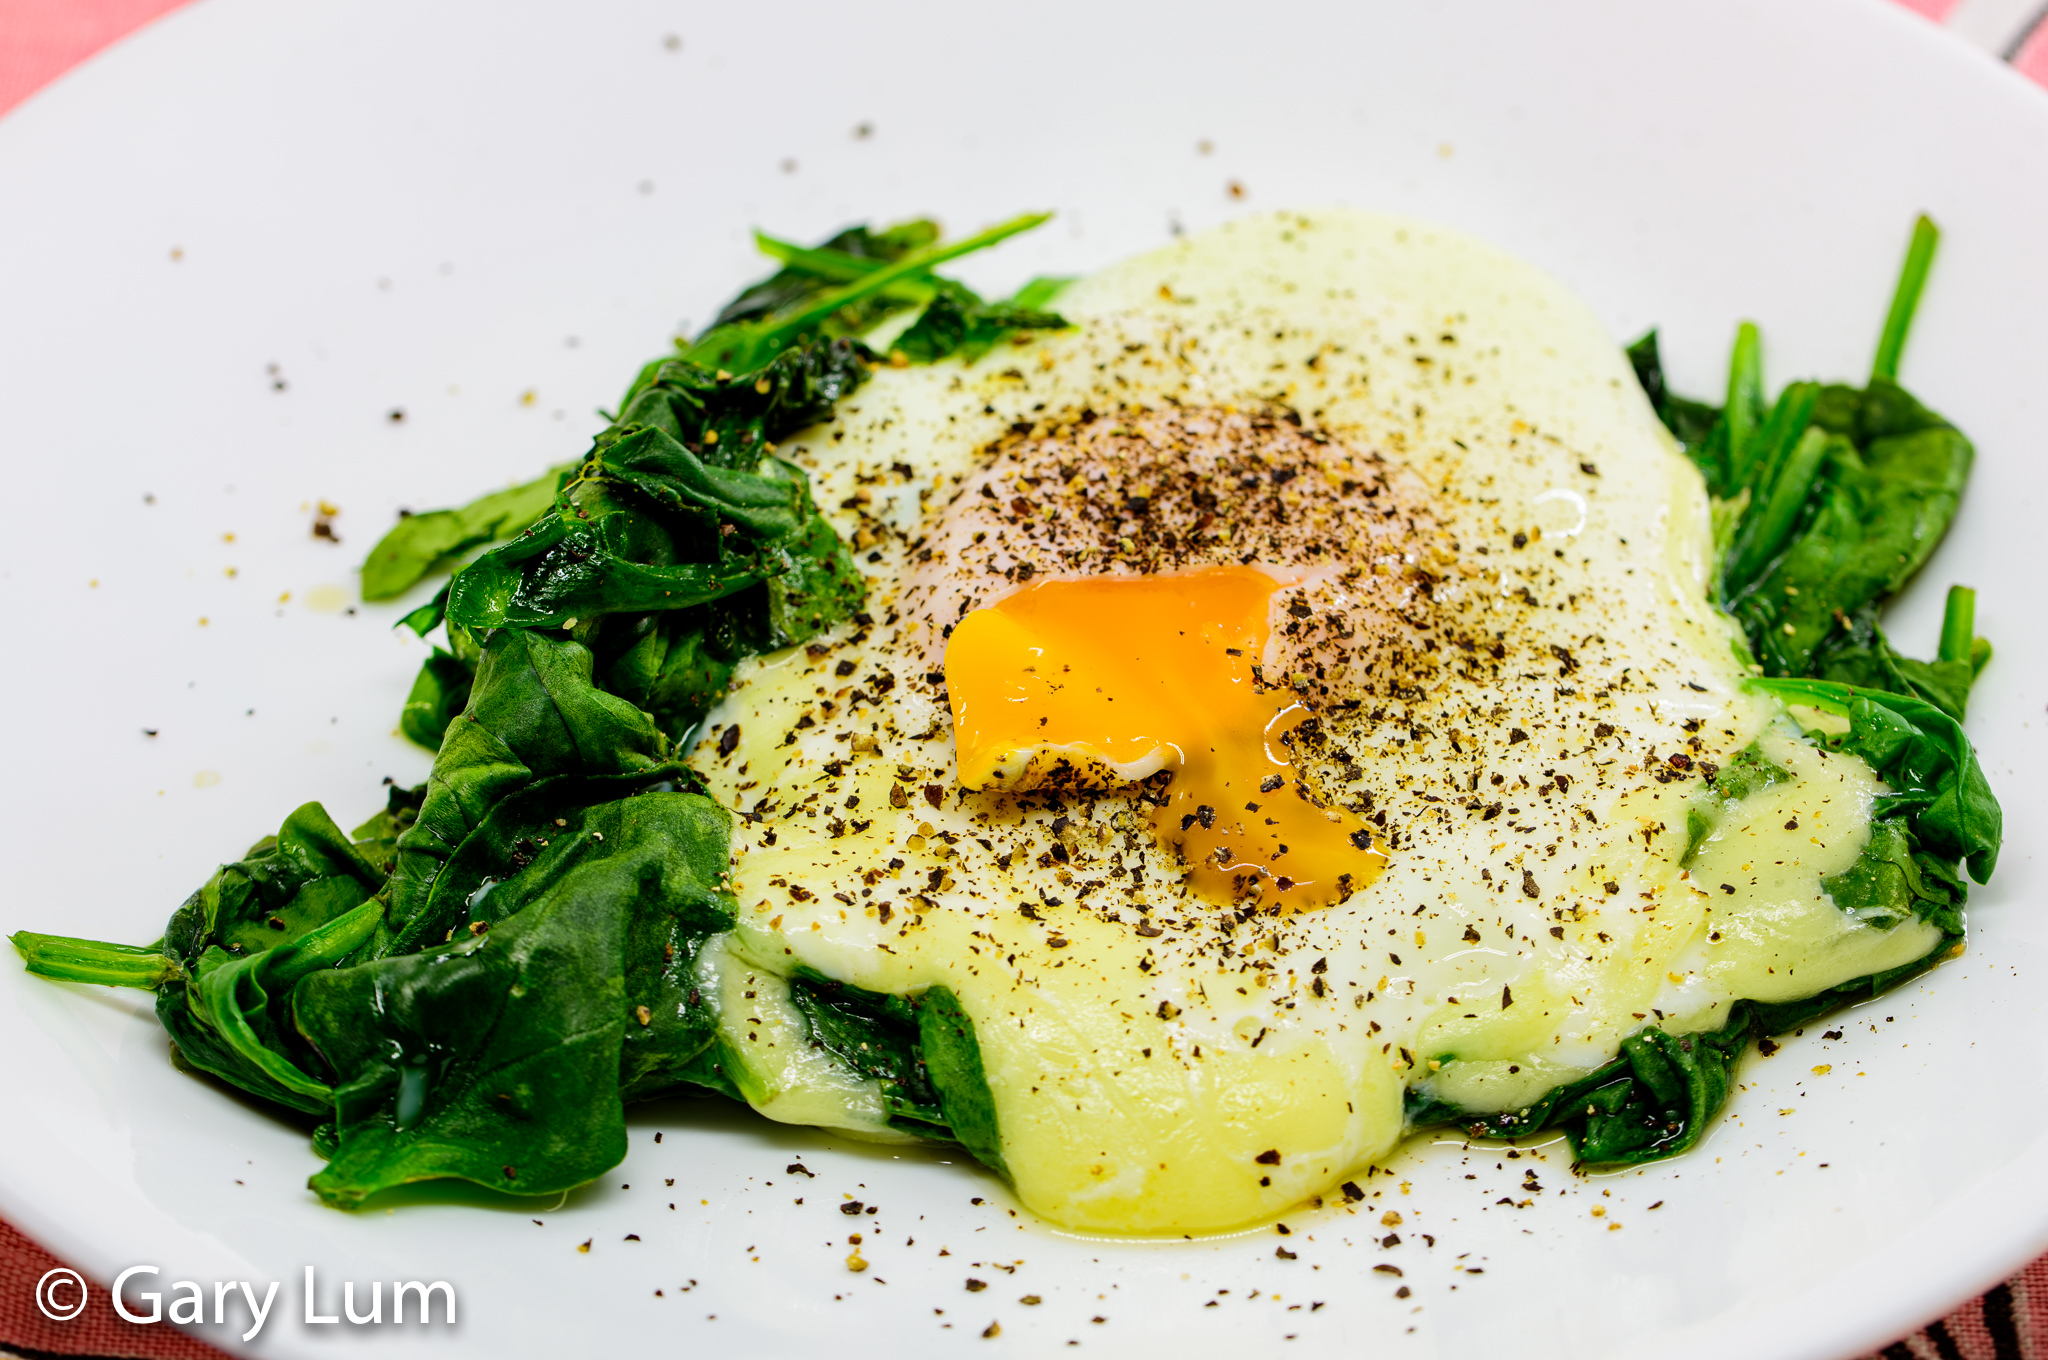 Steamed egg with mozzarella and wilted spinach. Gary Lum.